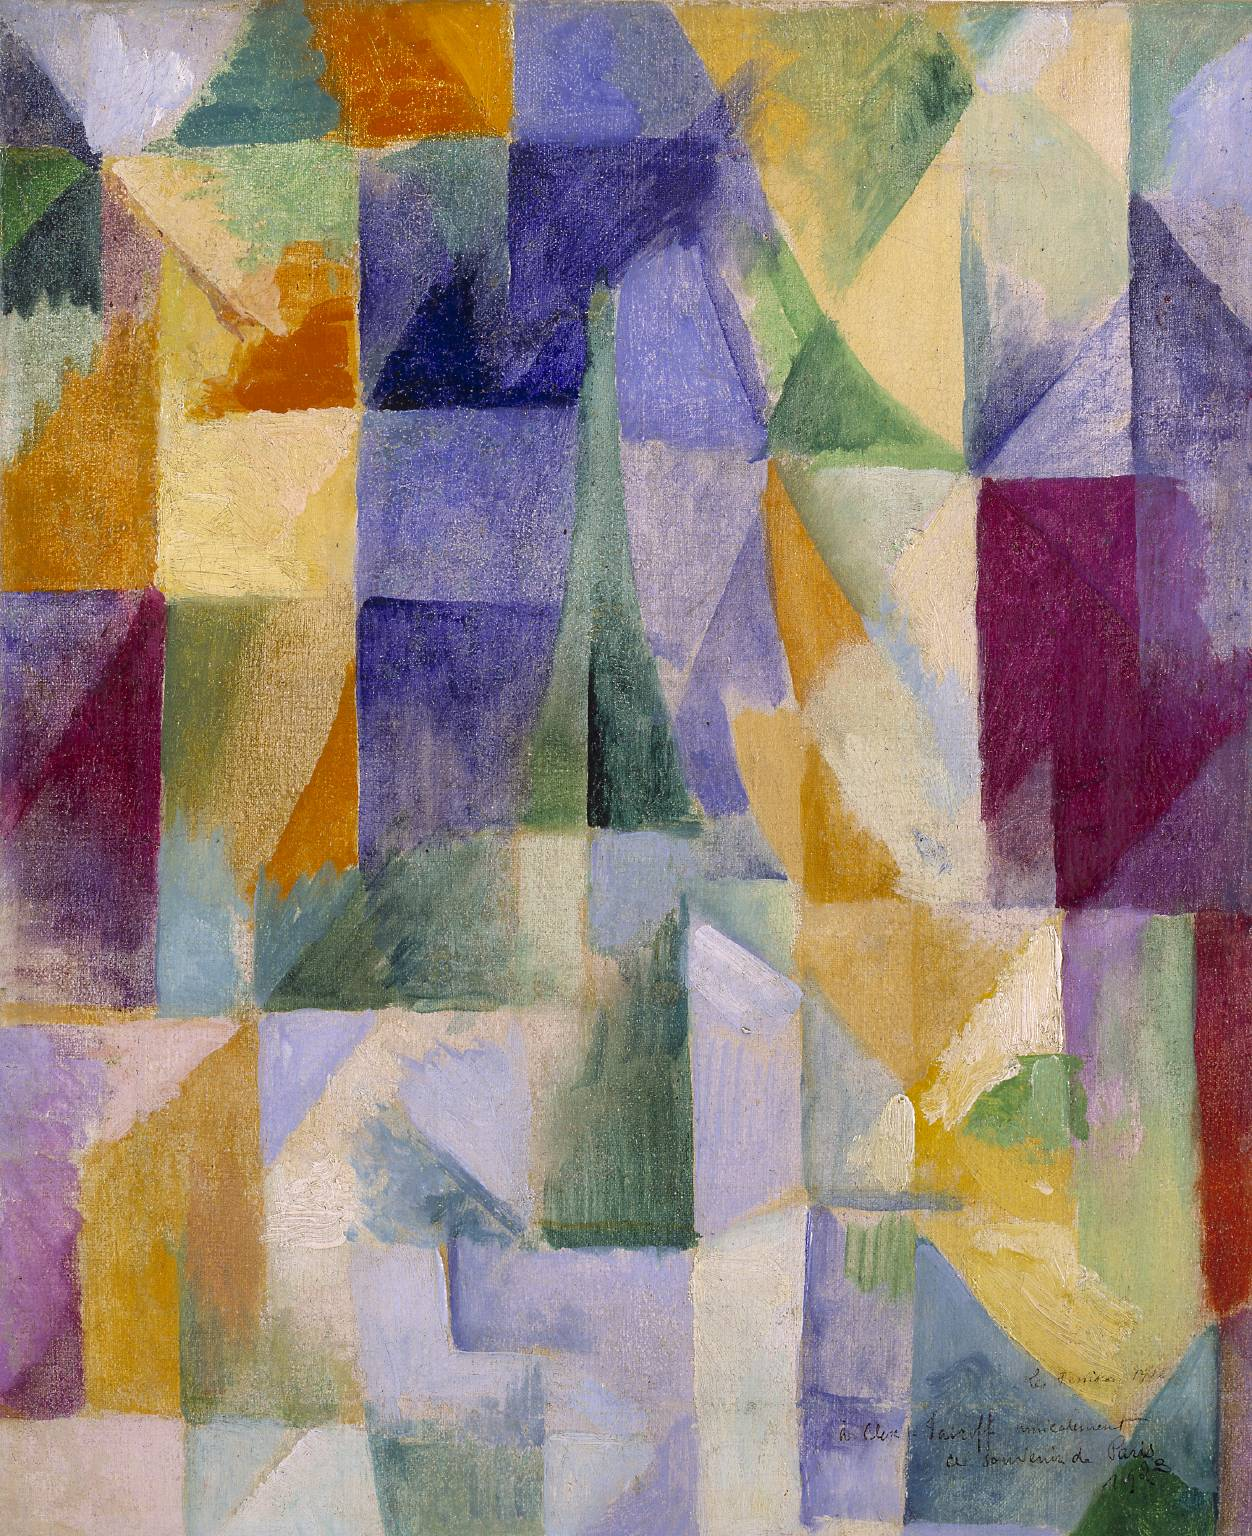 Abstract 19th Century Artist - %27Windows_Open_Simultaneously_%28First_Part%2C_Third_Motif%29%27_by_Robert_Delaunay_Amazing Abstract 19th Century Artist - %27Windows_Open_Simultaneously_%28First_Part%2C_Third_Motif%29%27_by_Robert_Delaunay  Graphic_529314.JPG